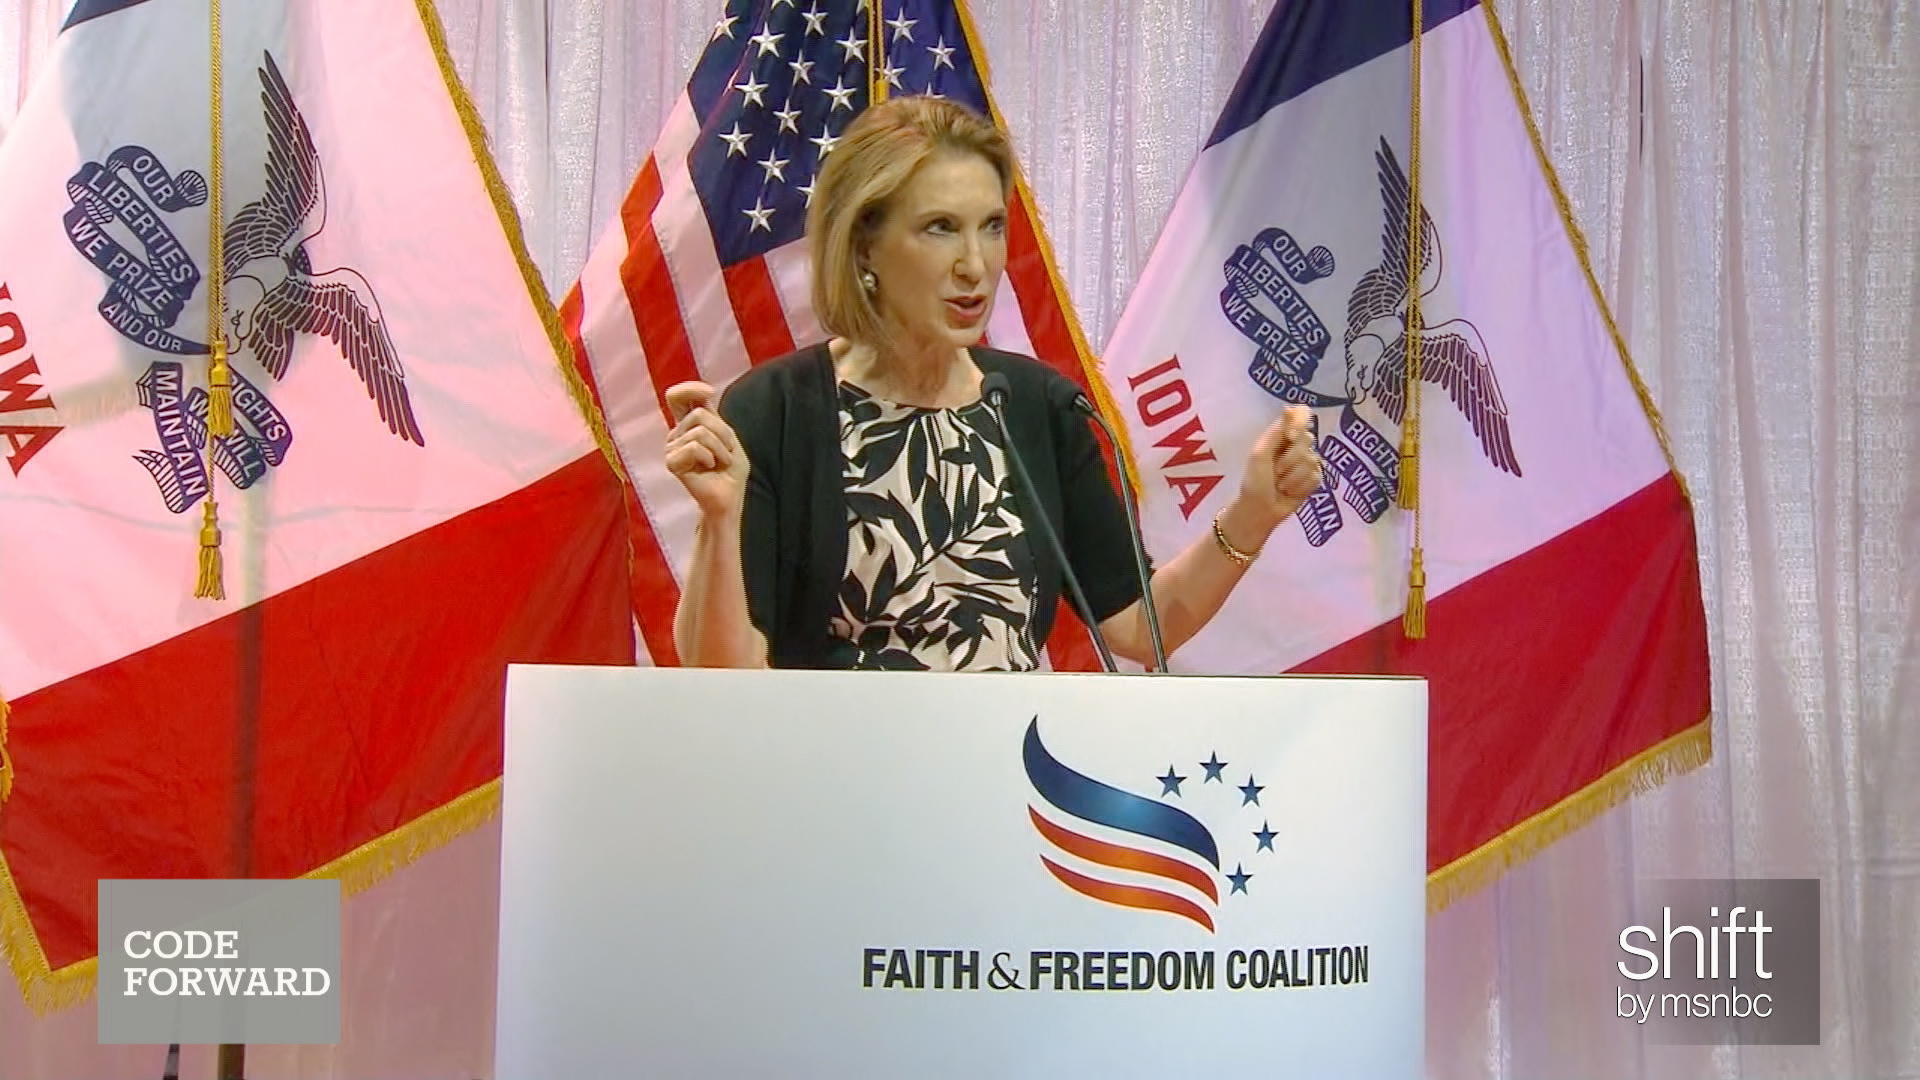 Will tech-world baggage hurt Carly Fiorina?